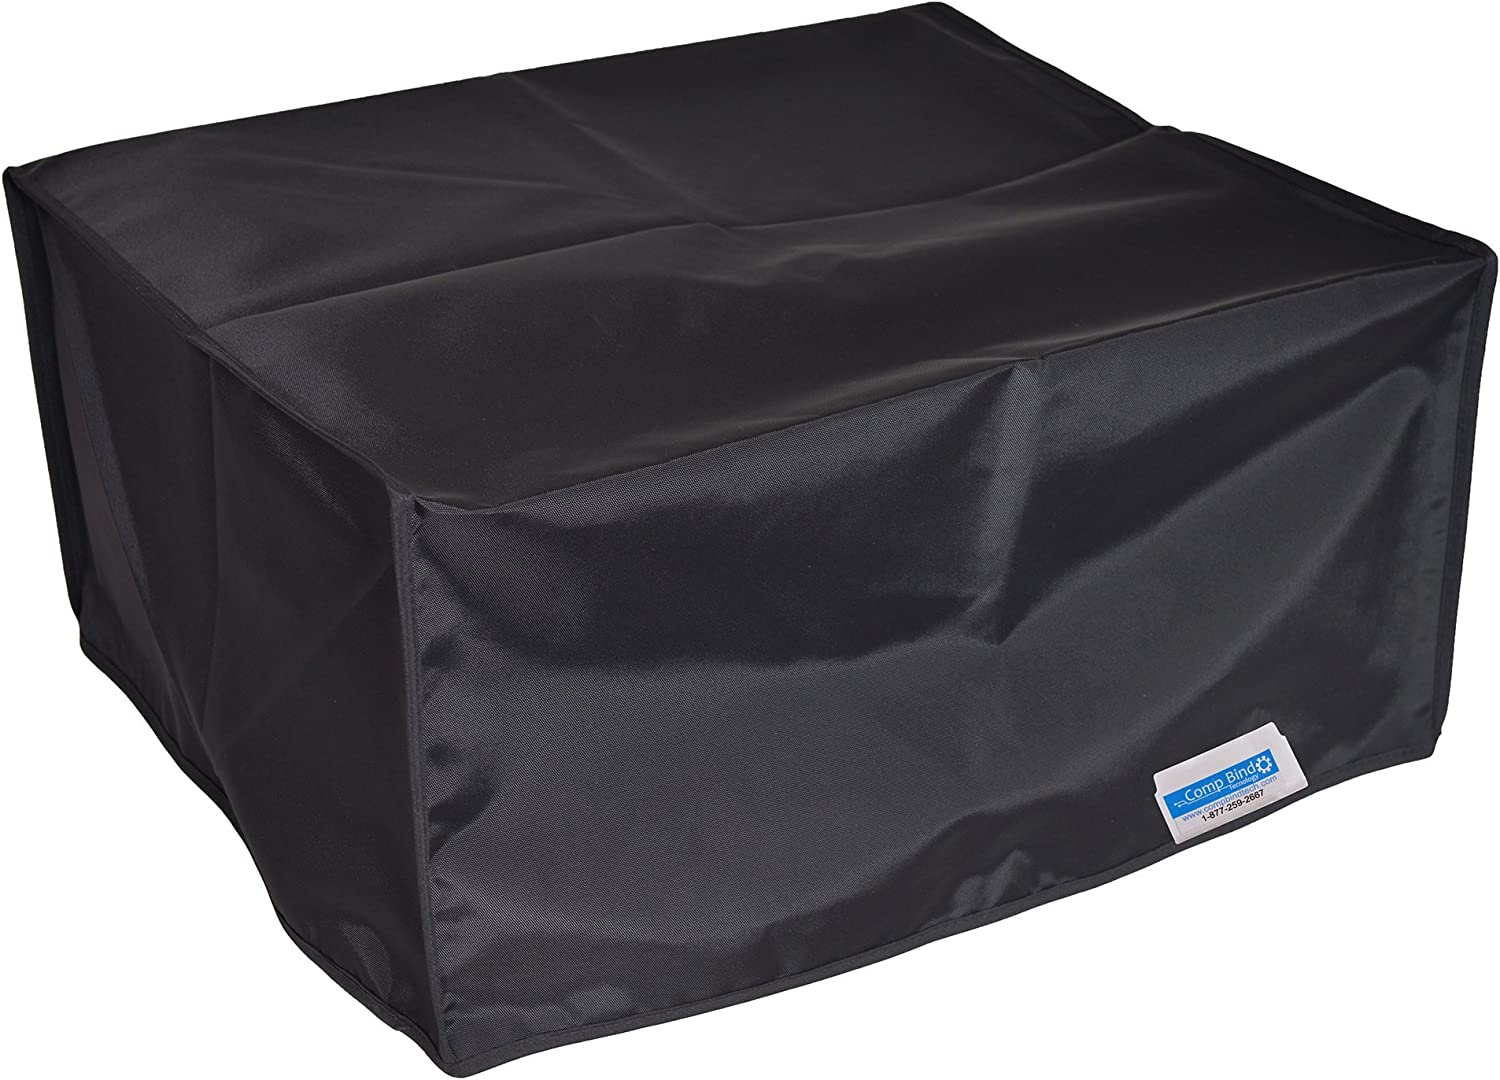 Comp Bind Technology Printer Dust Cover for HP Envy 7640 e All-in-ONE Printer. Black Nylon Dust Cover Dimensions 17.7'W x 16.8''D x 7.6''H